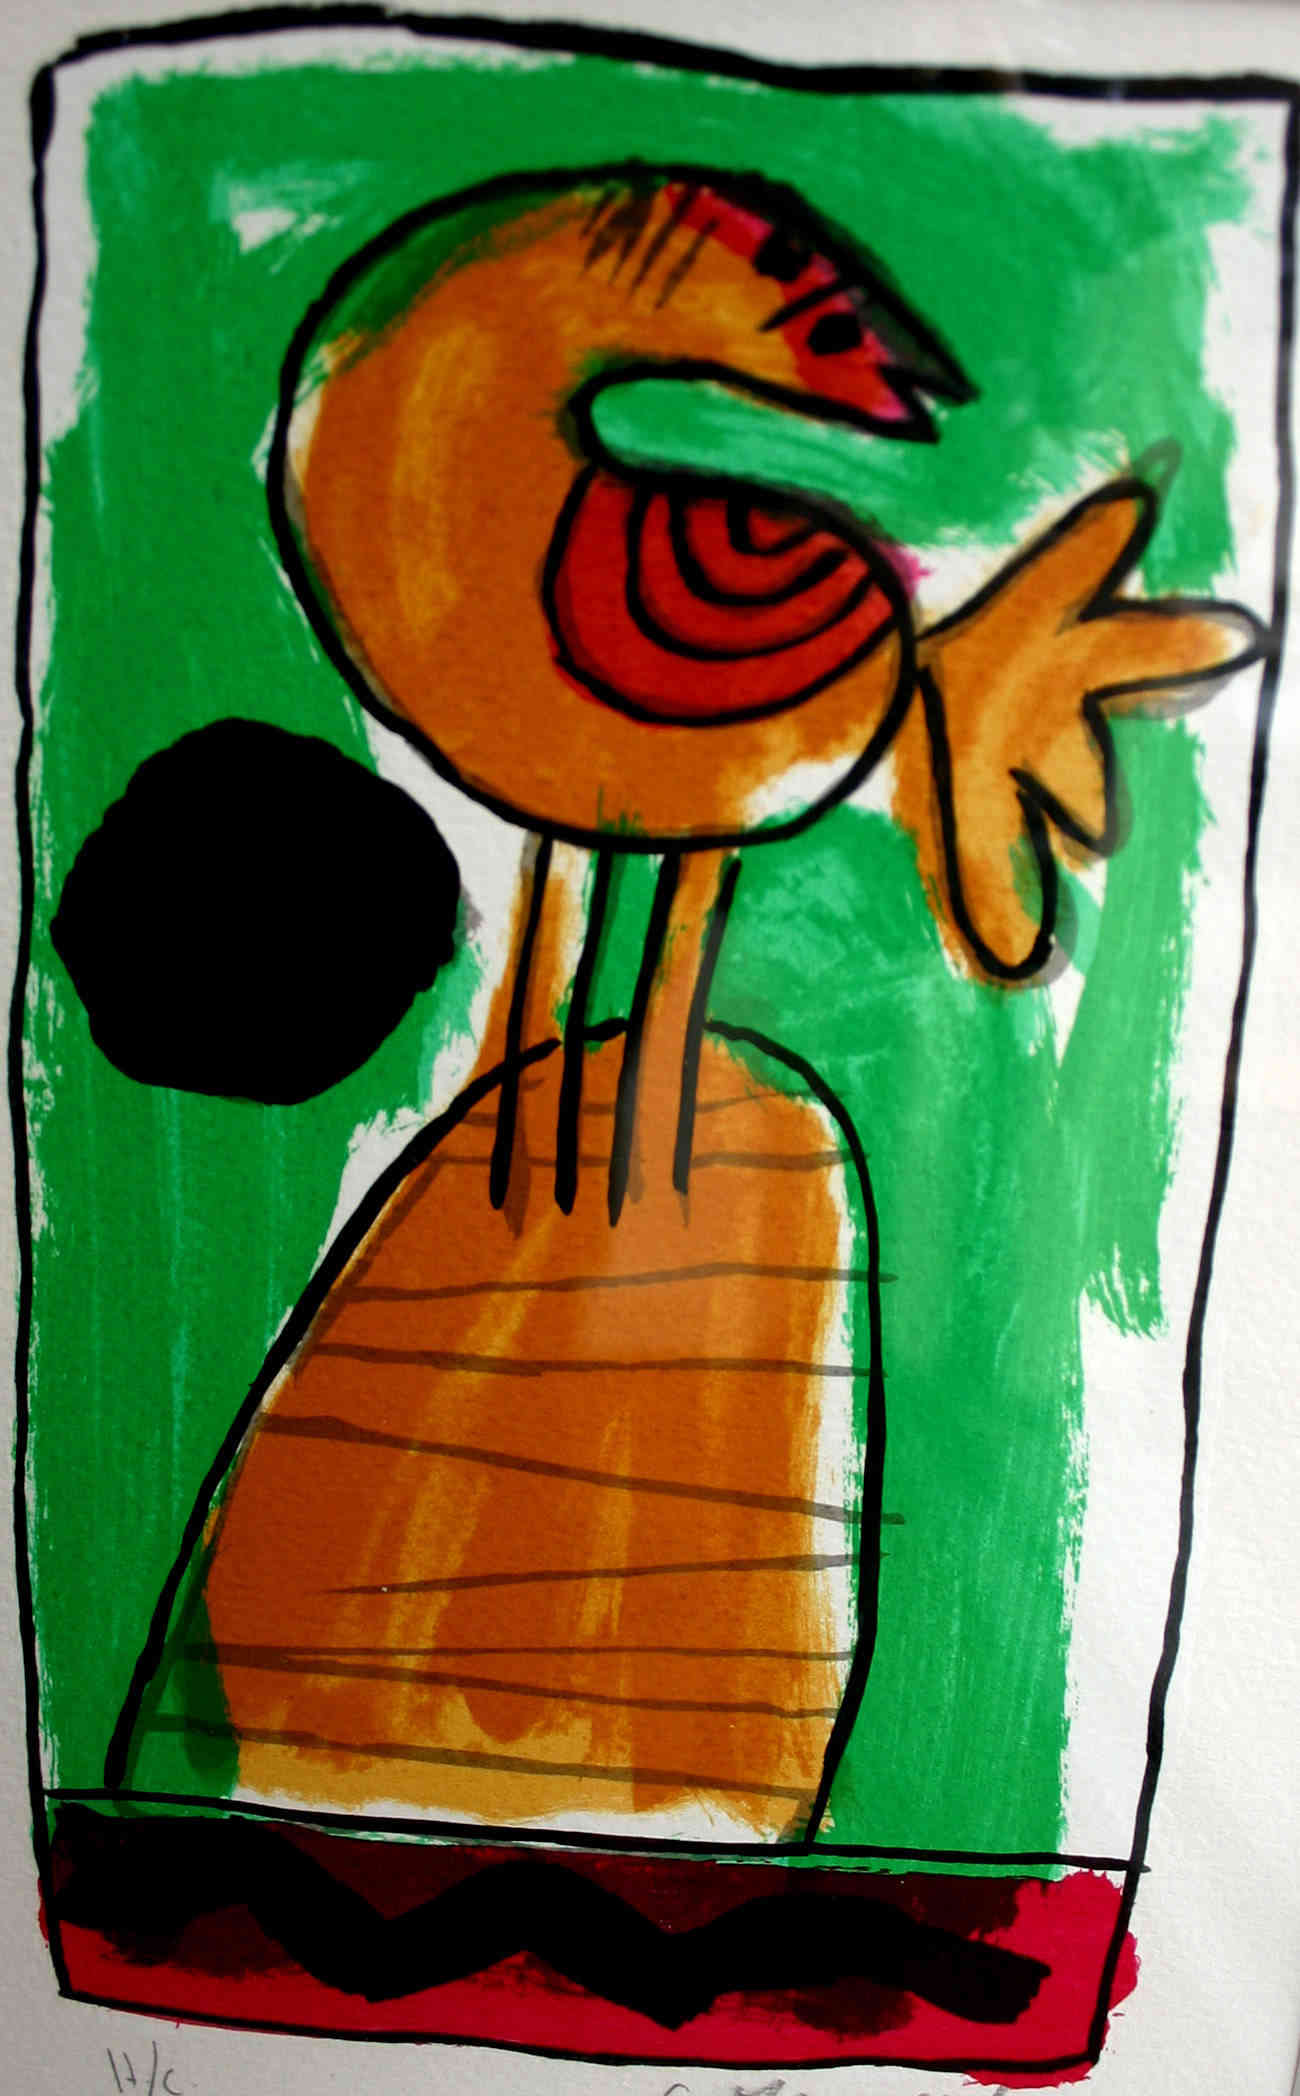 Orange bird  Corneille (1922-2010) - Kunsthandel Studio 2000